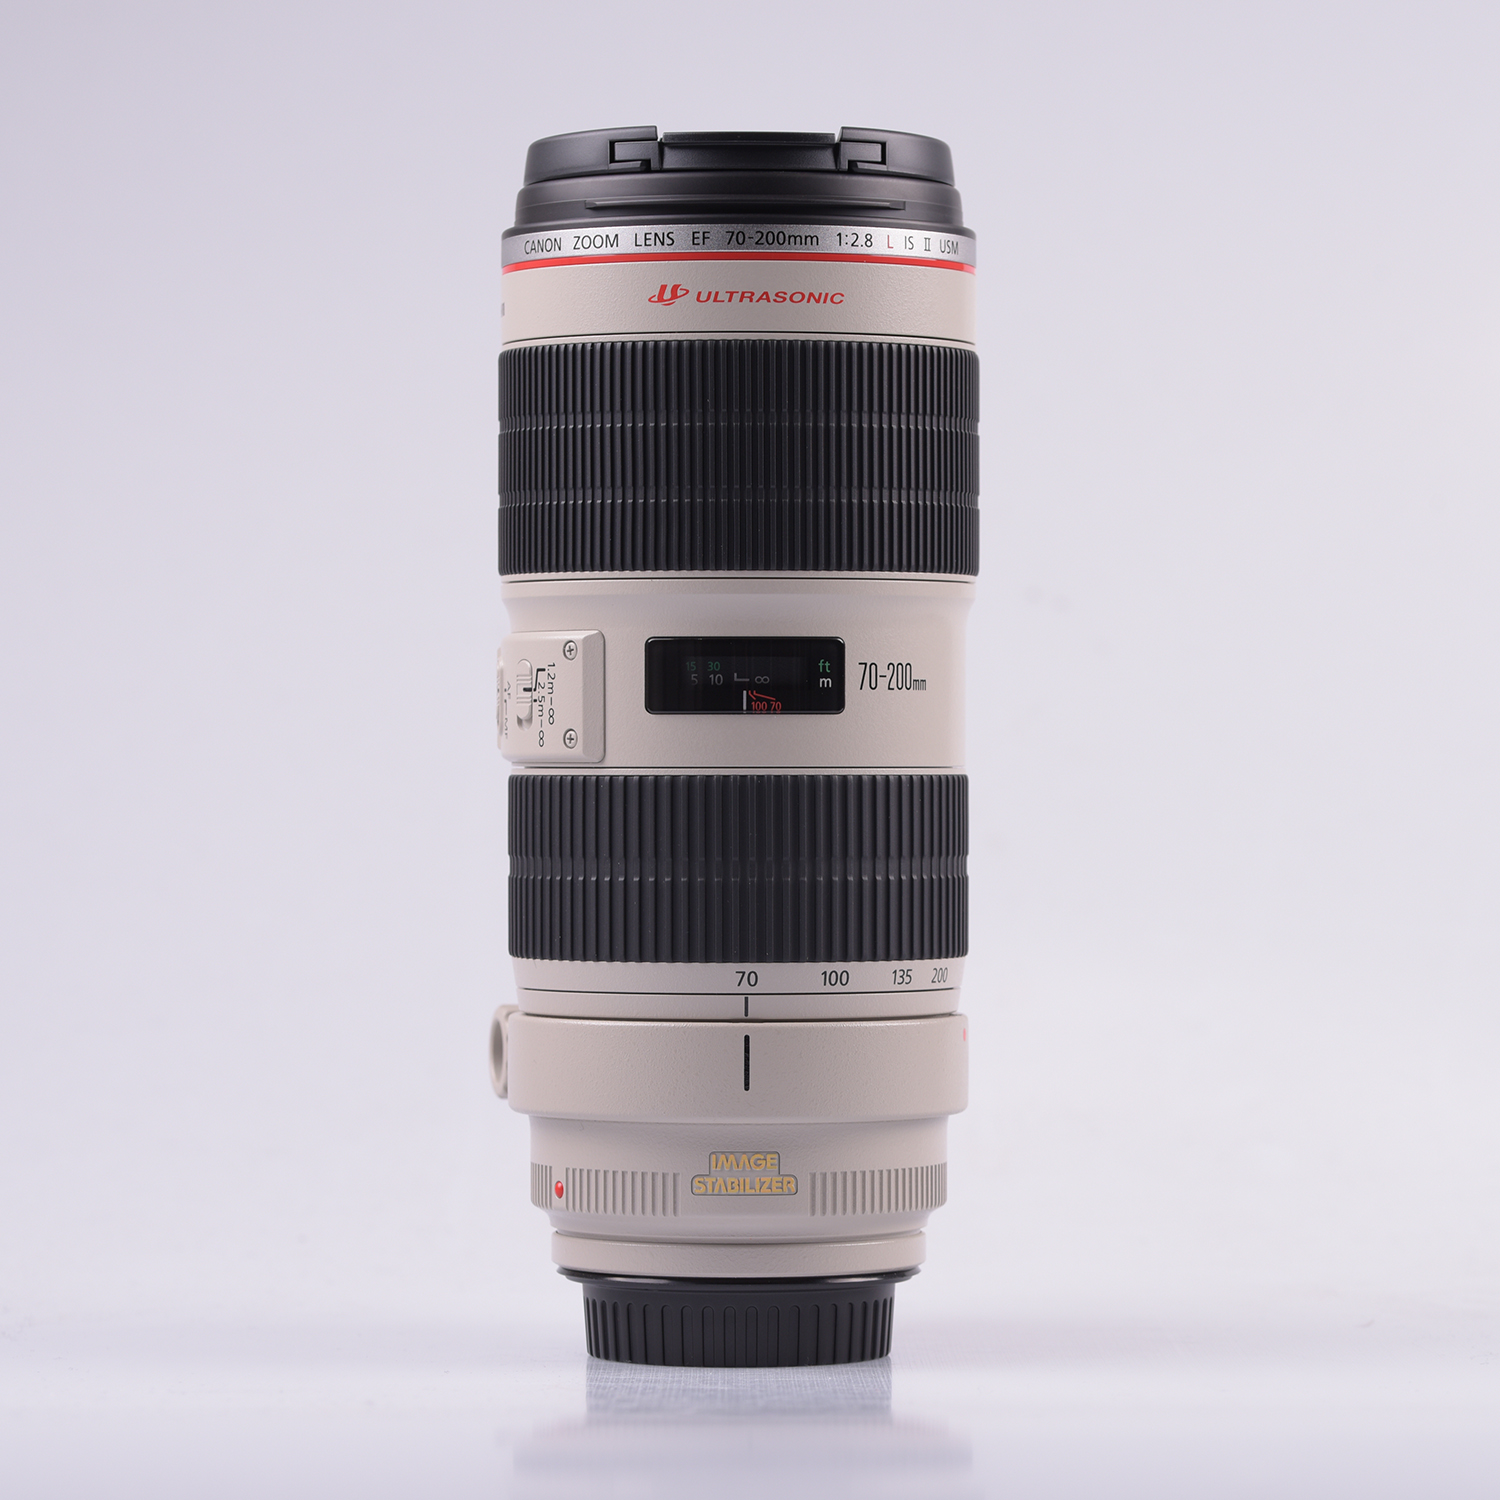 Image of Canon EF 70-200mm f/2.8L IS II USM Lens